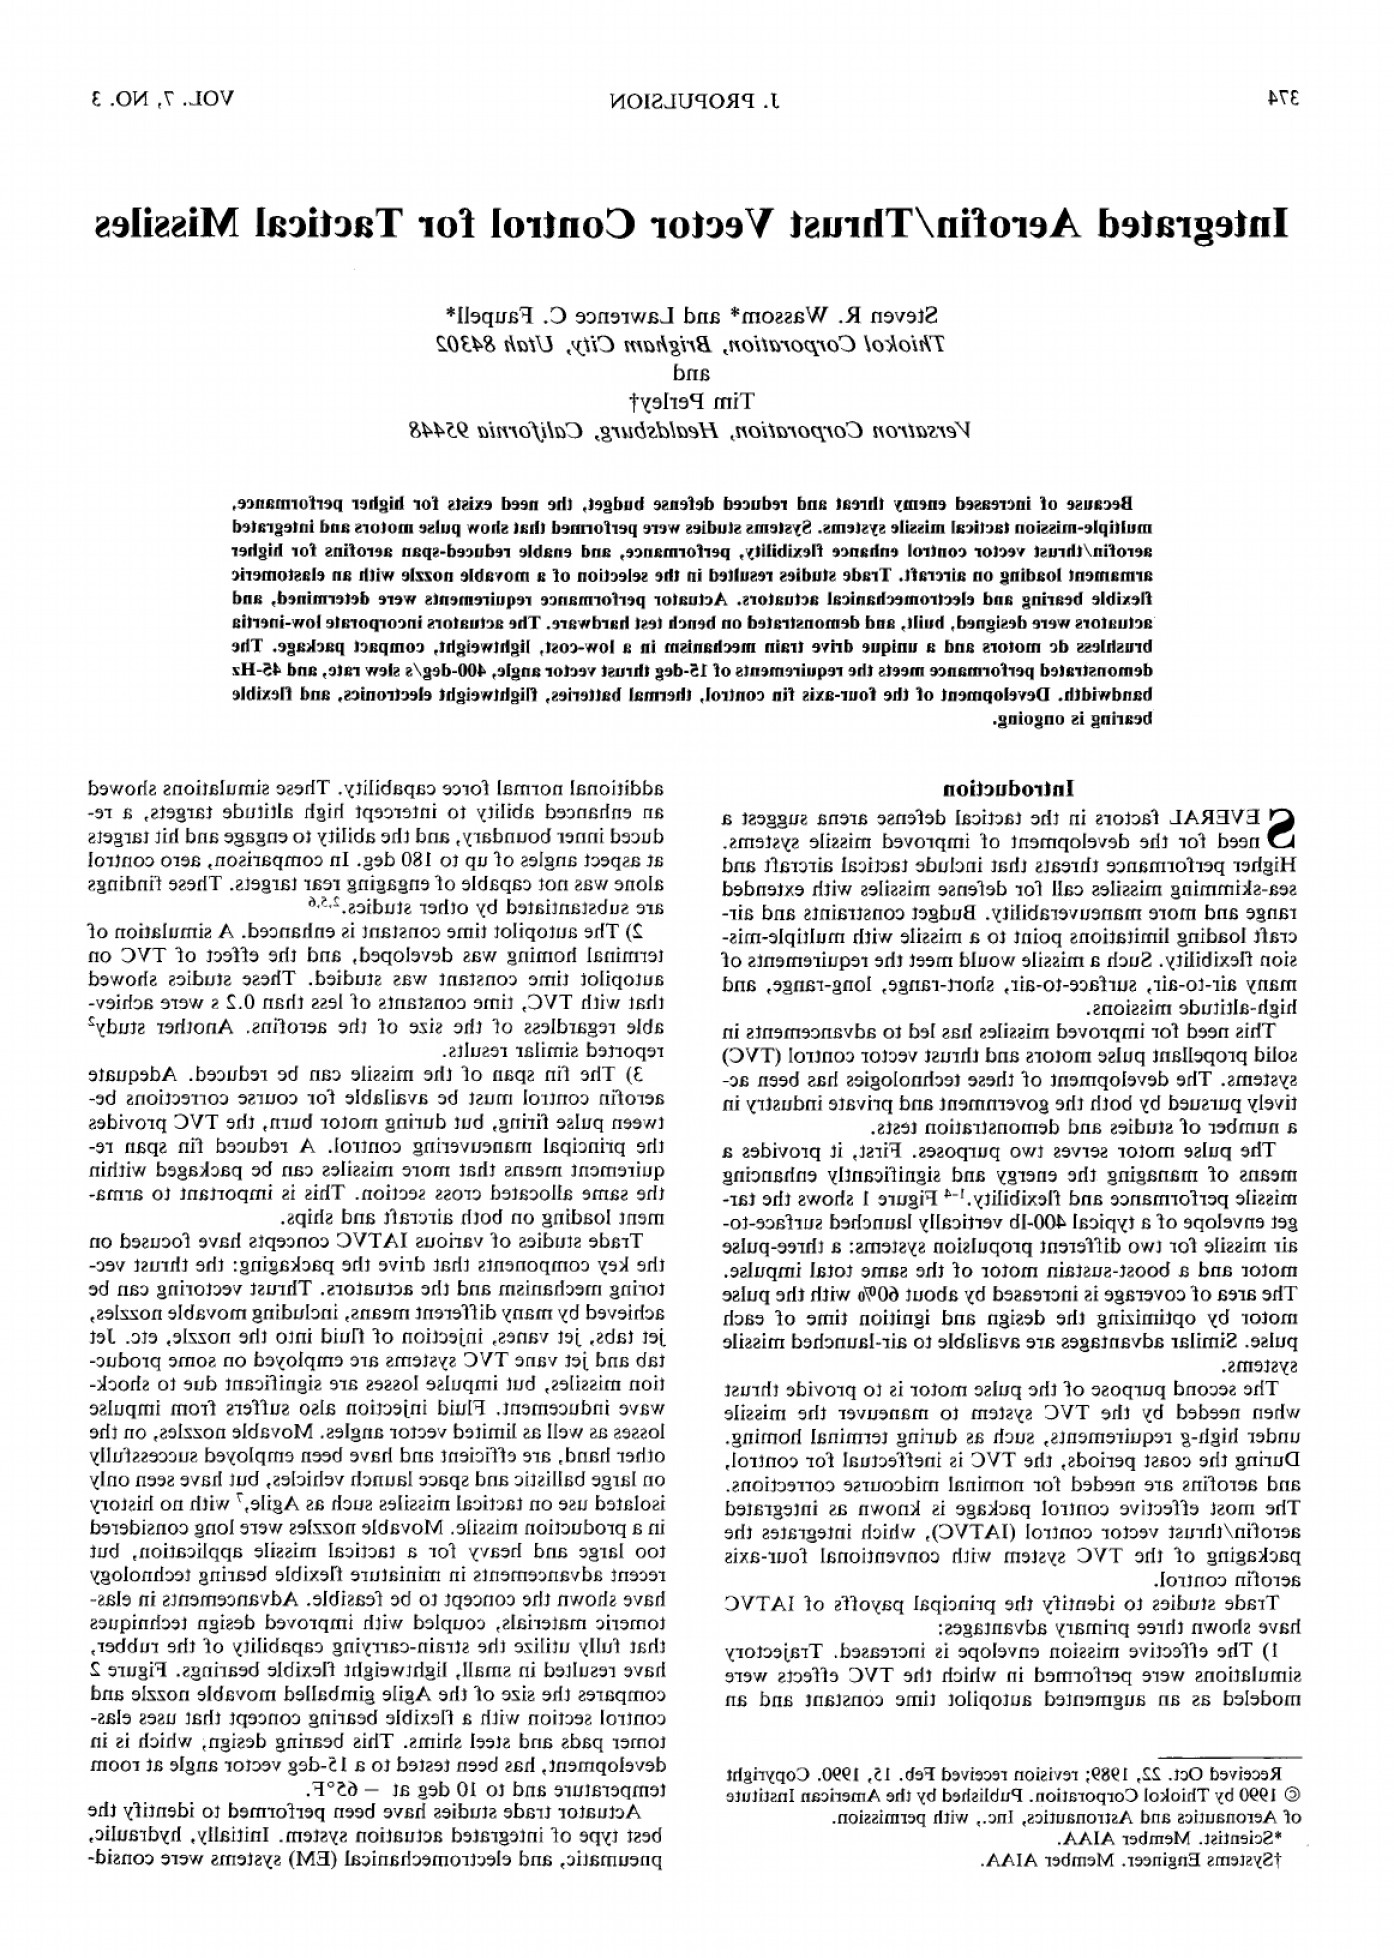 Thrust Vector Control: Integrated Aerofinthrust Vector Control For Tactical Missiles